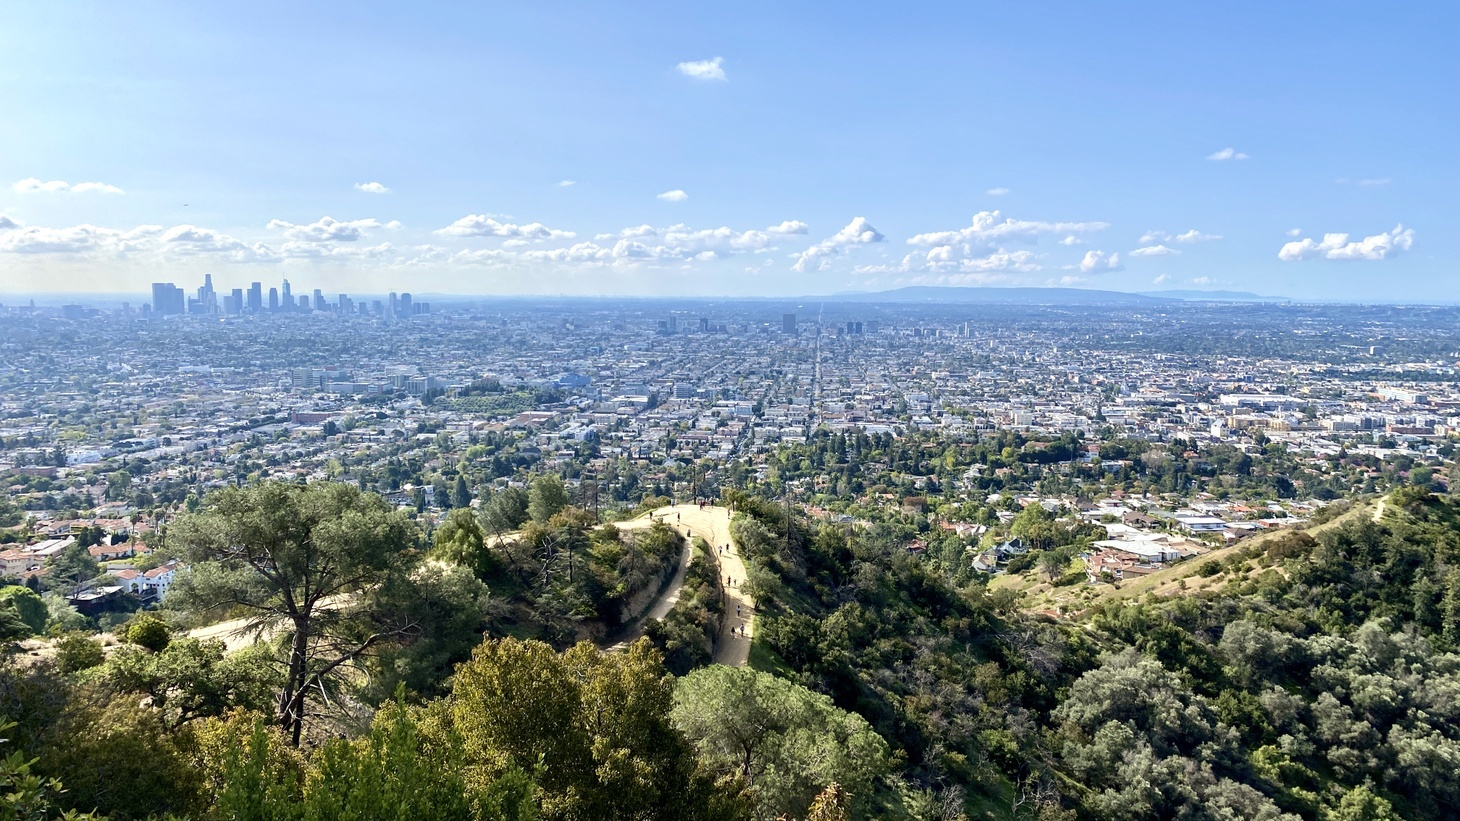 A view of hiking trails, Griffith Park, and downtown LA in the distance, March 21, 2020. During the early days of the pandemic, when LA was under a stay-at-home order, fewer cars on the road meant less air pollution and clearer skies.